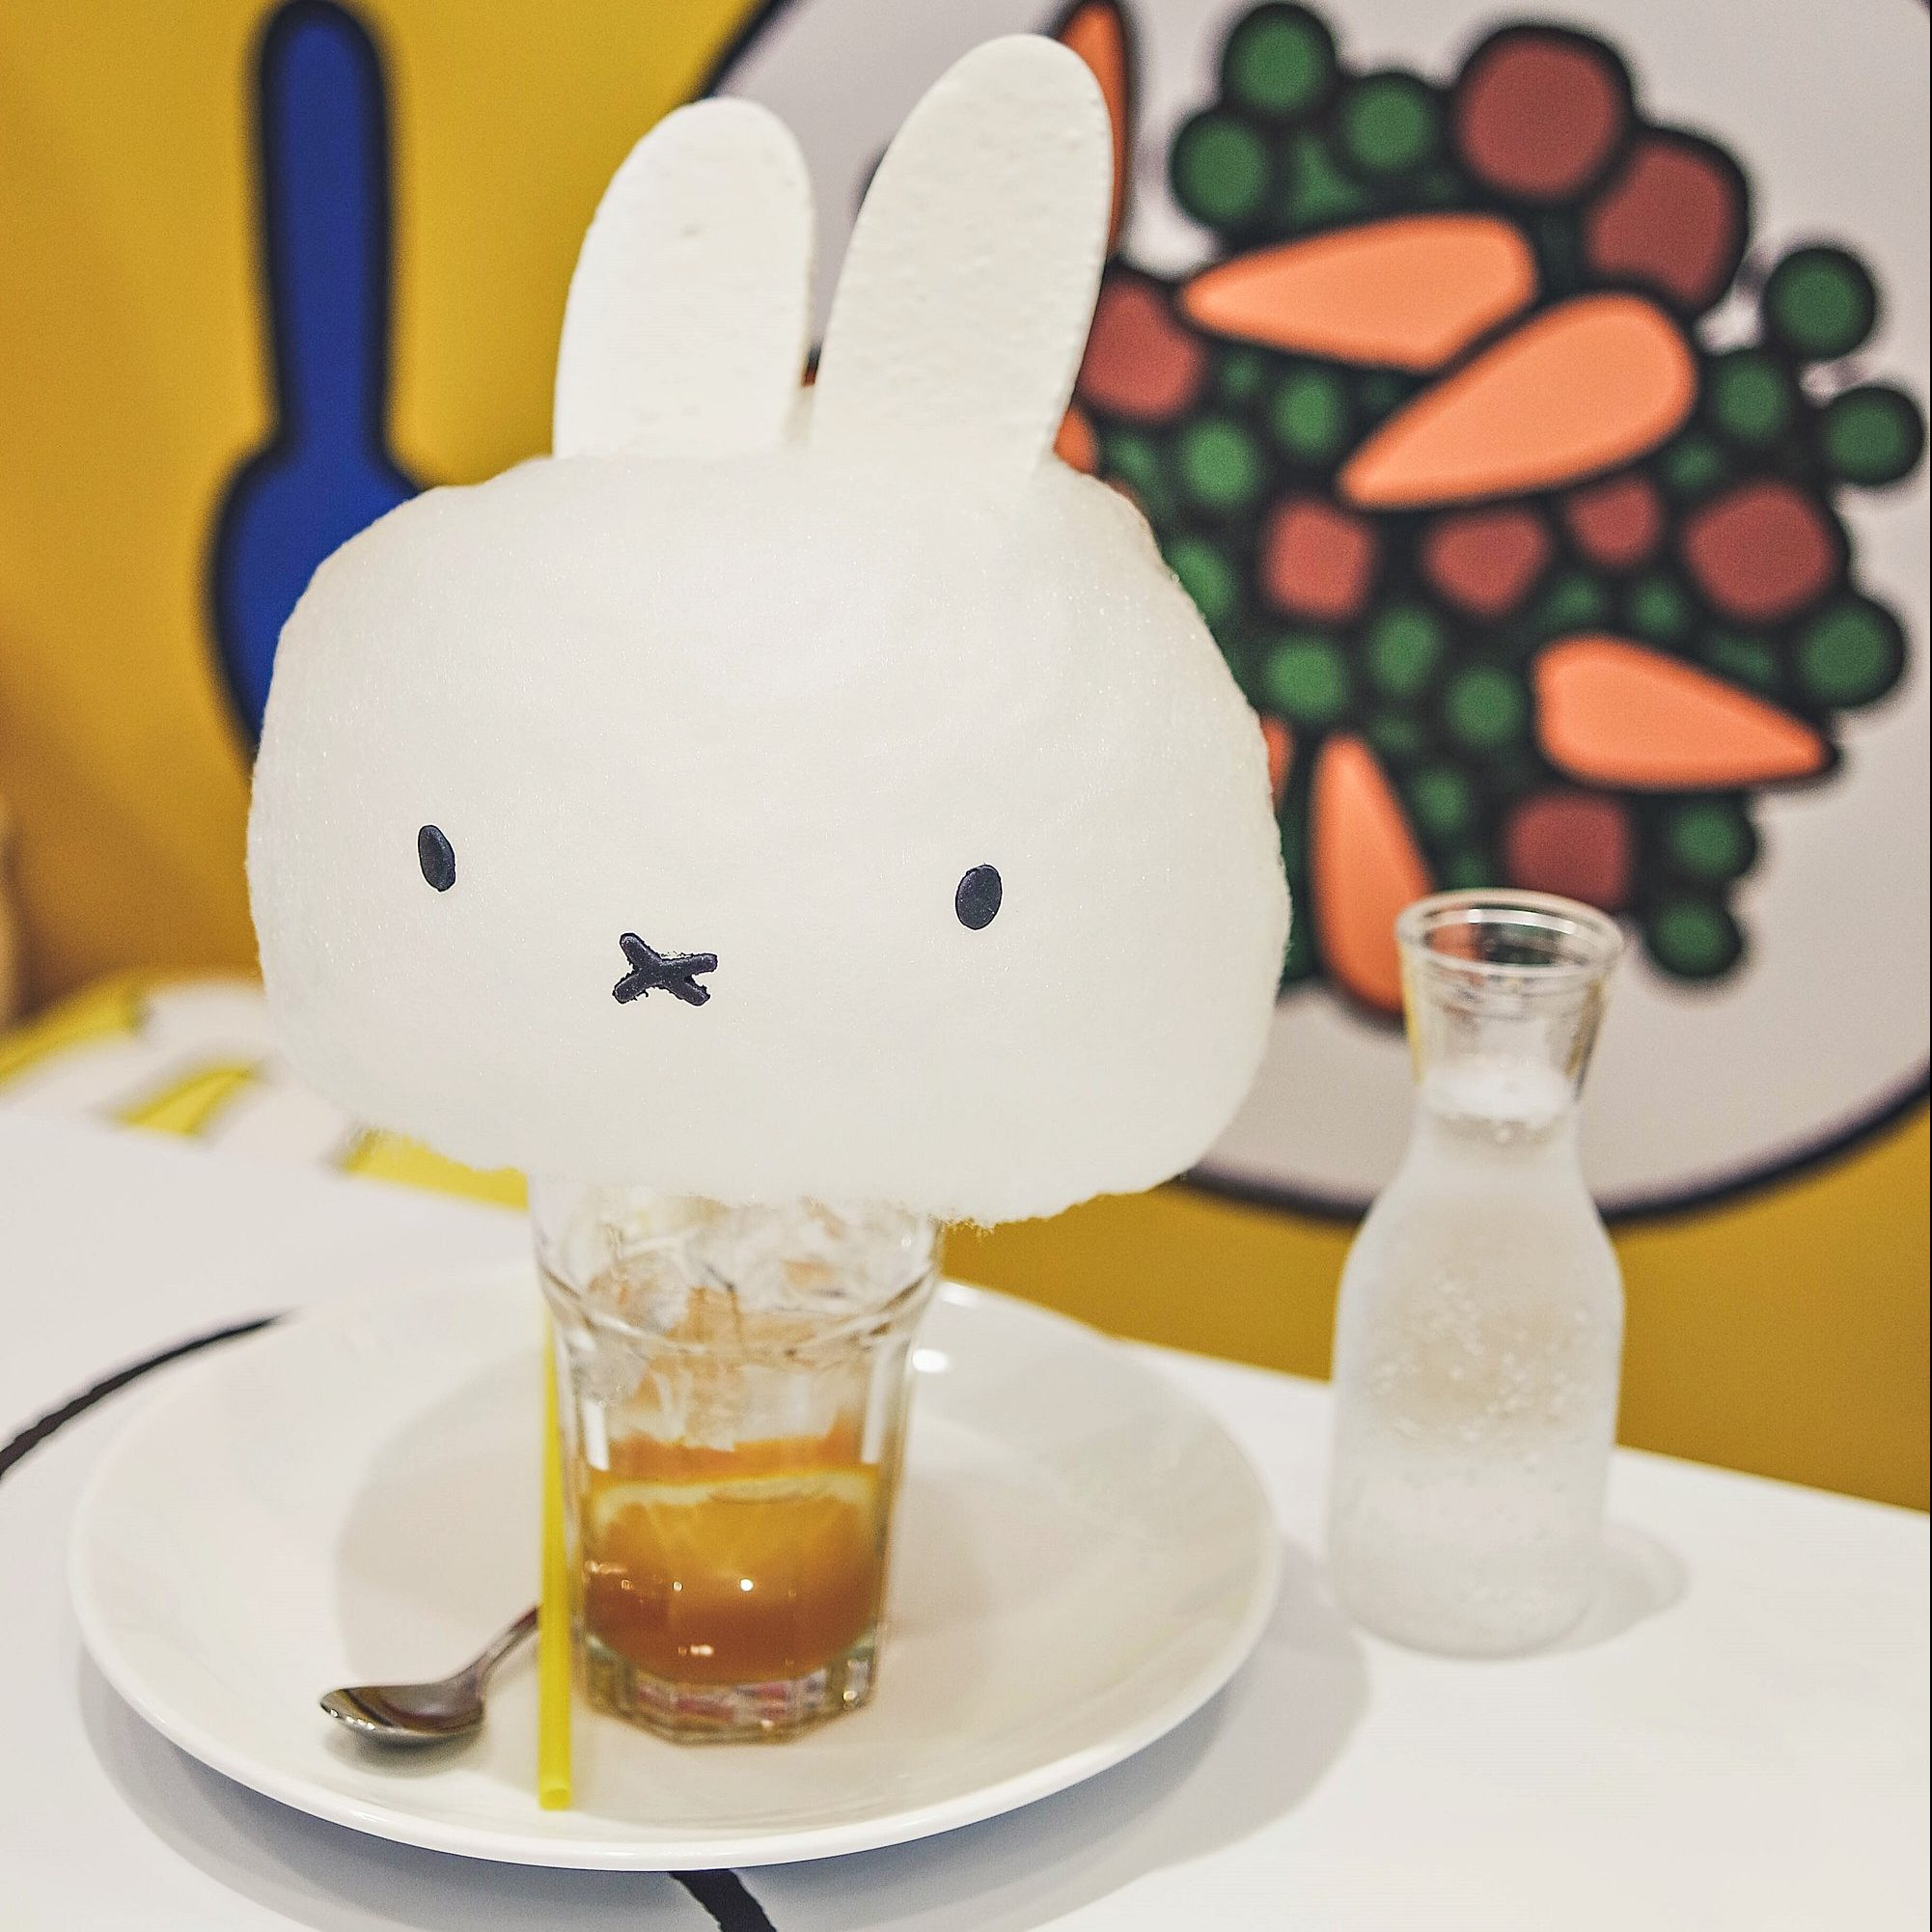 Miffy Original Orange Soda - Miffy Character Themed Cafe - Kumoya